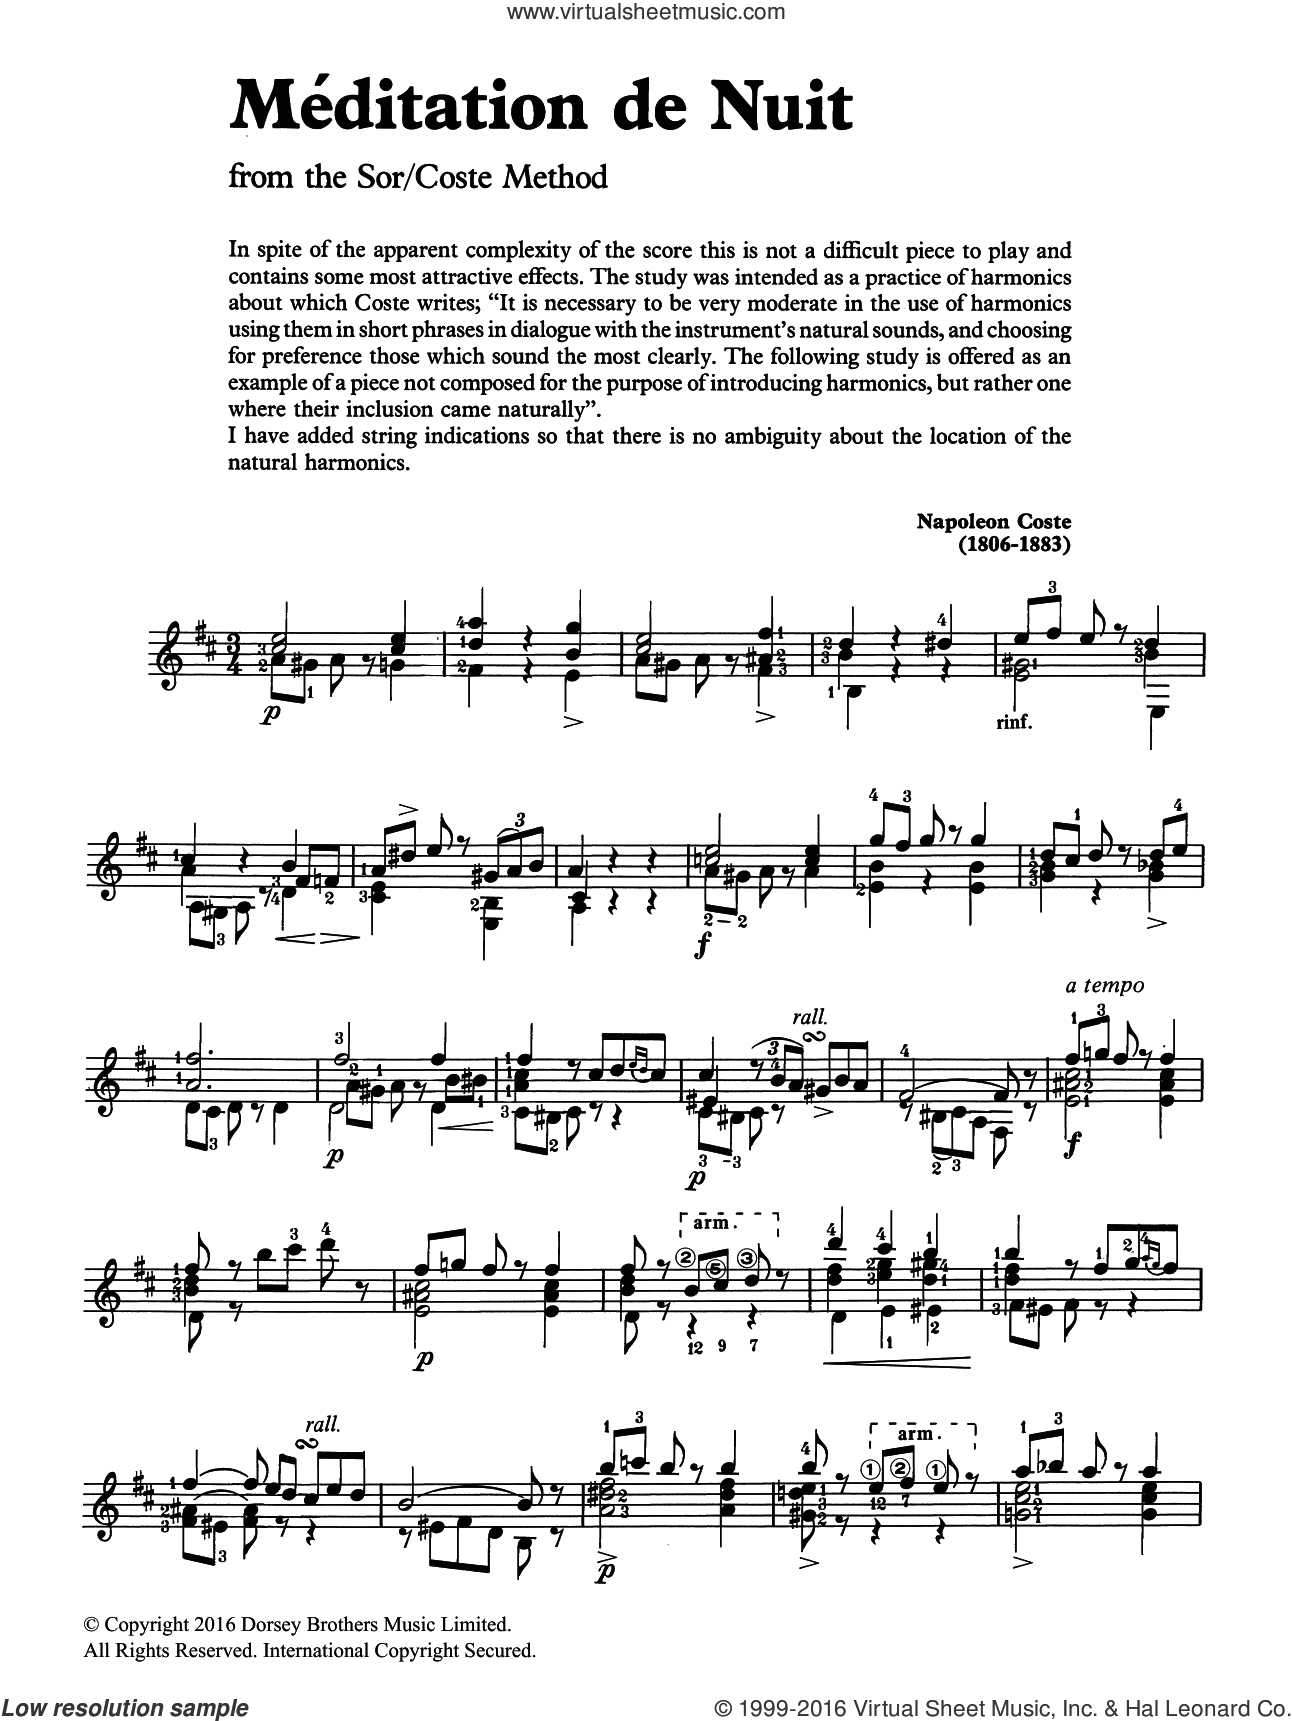 Meditation De Nuit sheet music for guitar solo (chords) by Napoleon Coste. Score Image Preview.